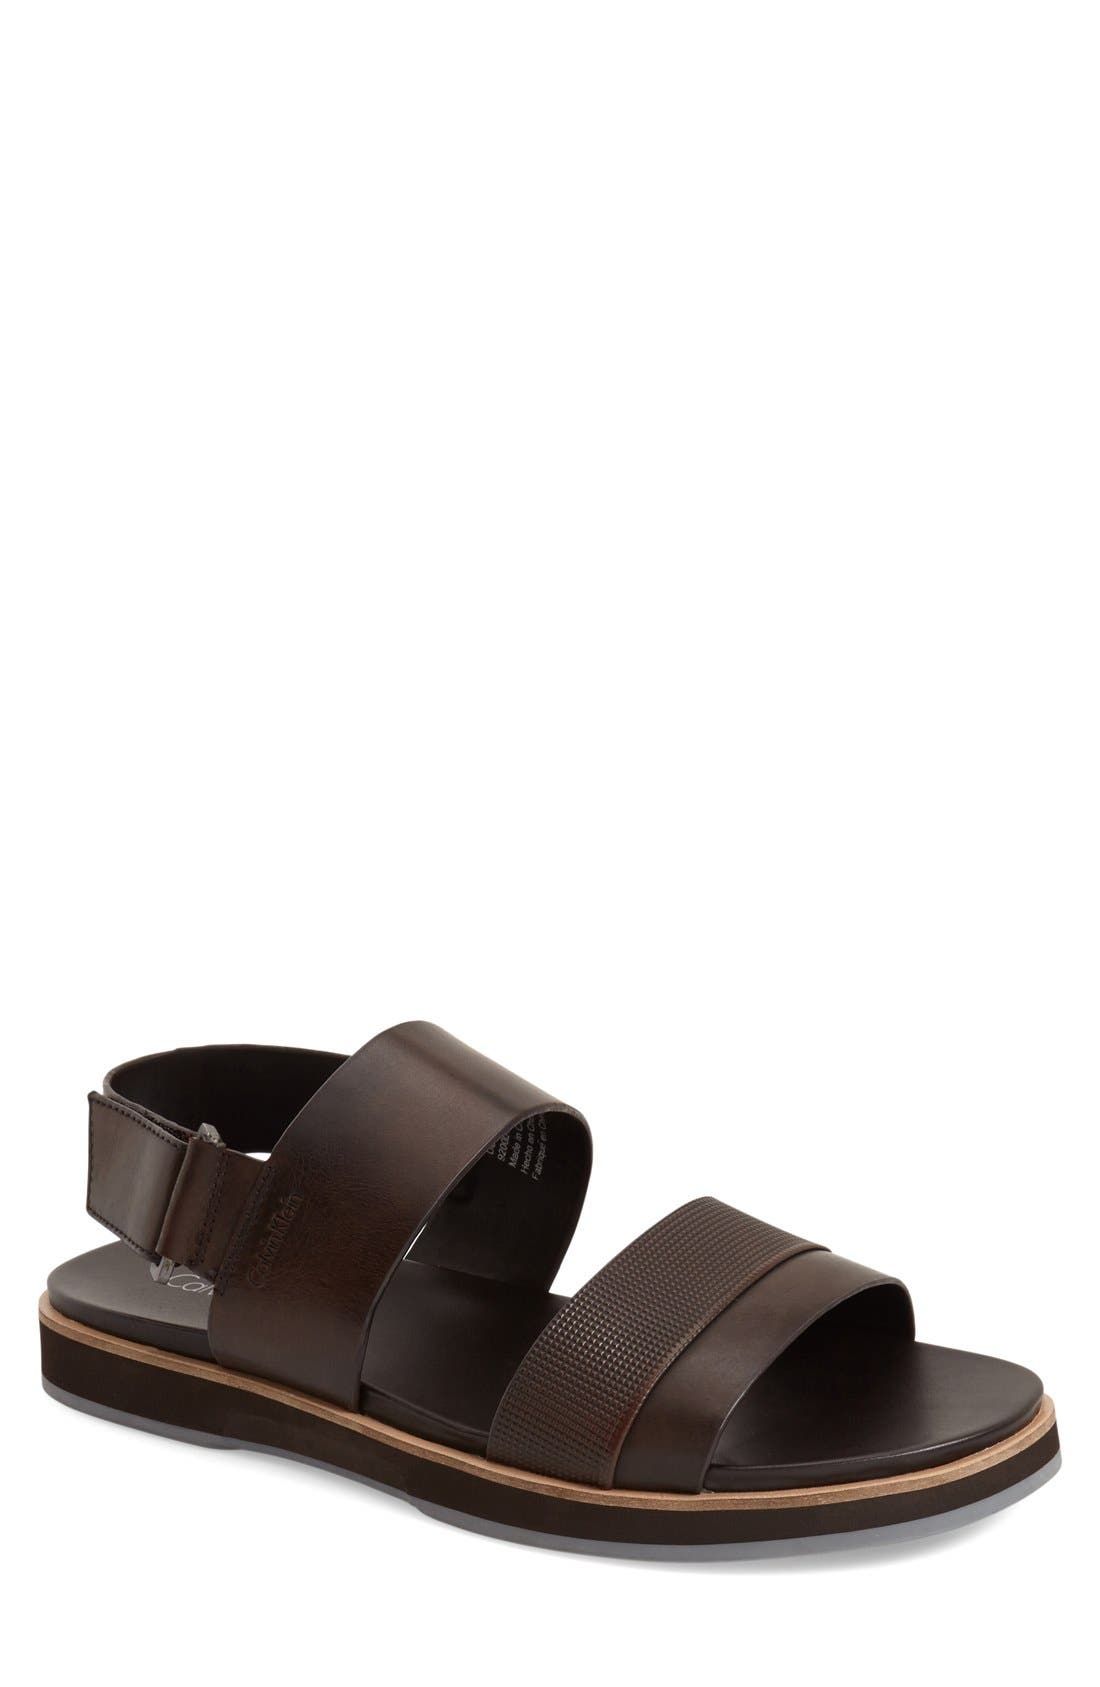 'Dex' Embossed Leather Sandal,                             Main thumbnail 5, color,